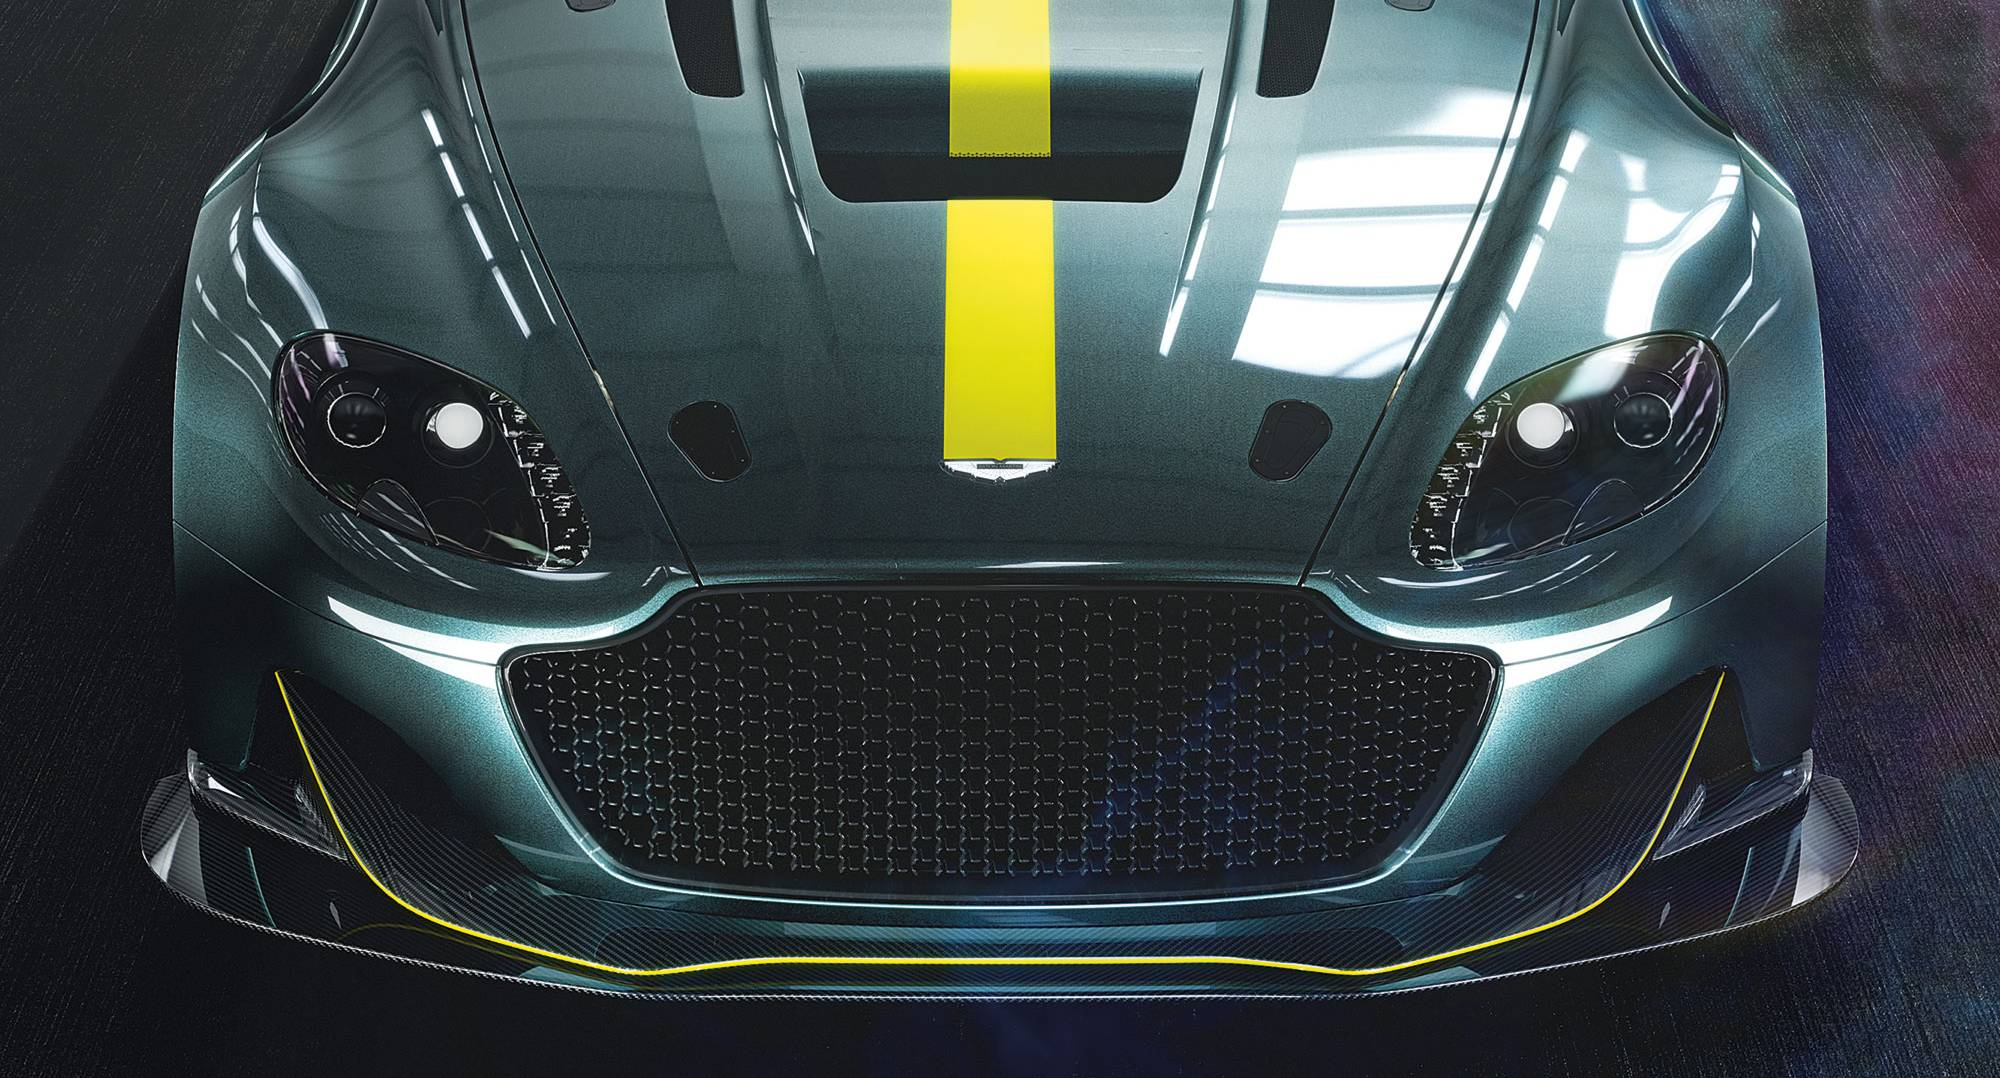 The AMR Vantage Pro Was Unveiled At The 2017 Geneva Motor Show. Aston Martin  Hopes To Build On Its Success On The Track In The 2016 World Endurance ...